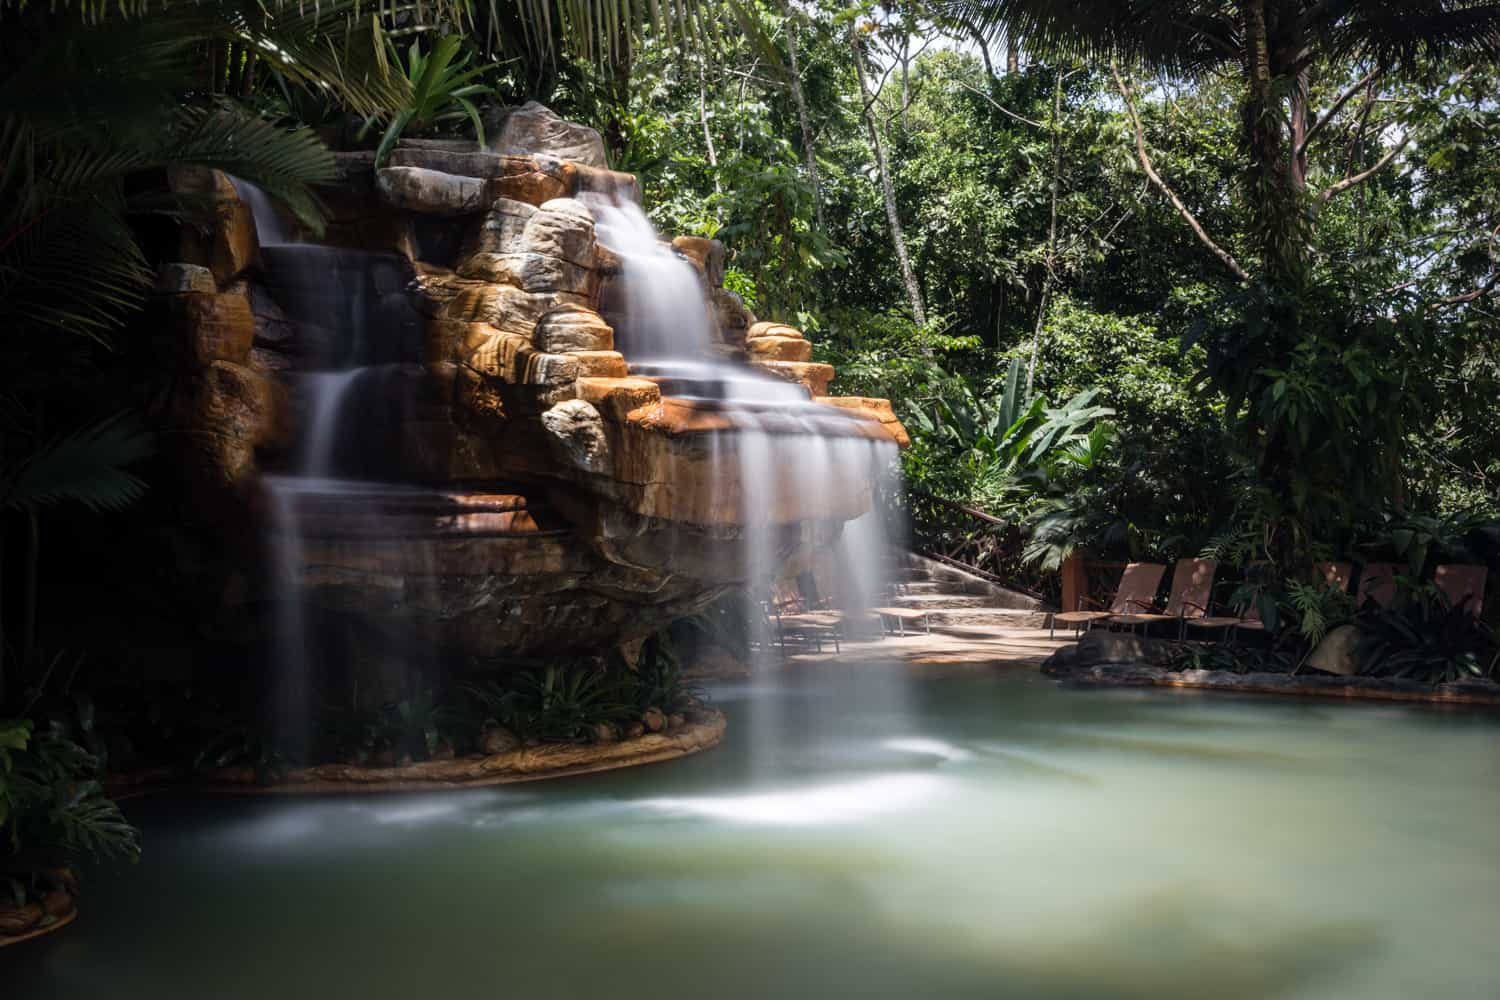 View of thermal springs waterfall from Treetops wedding and reception location.